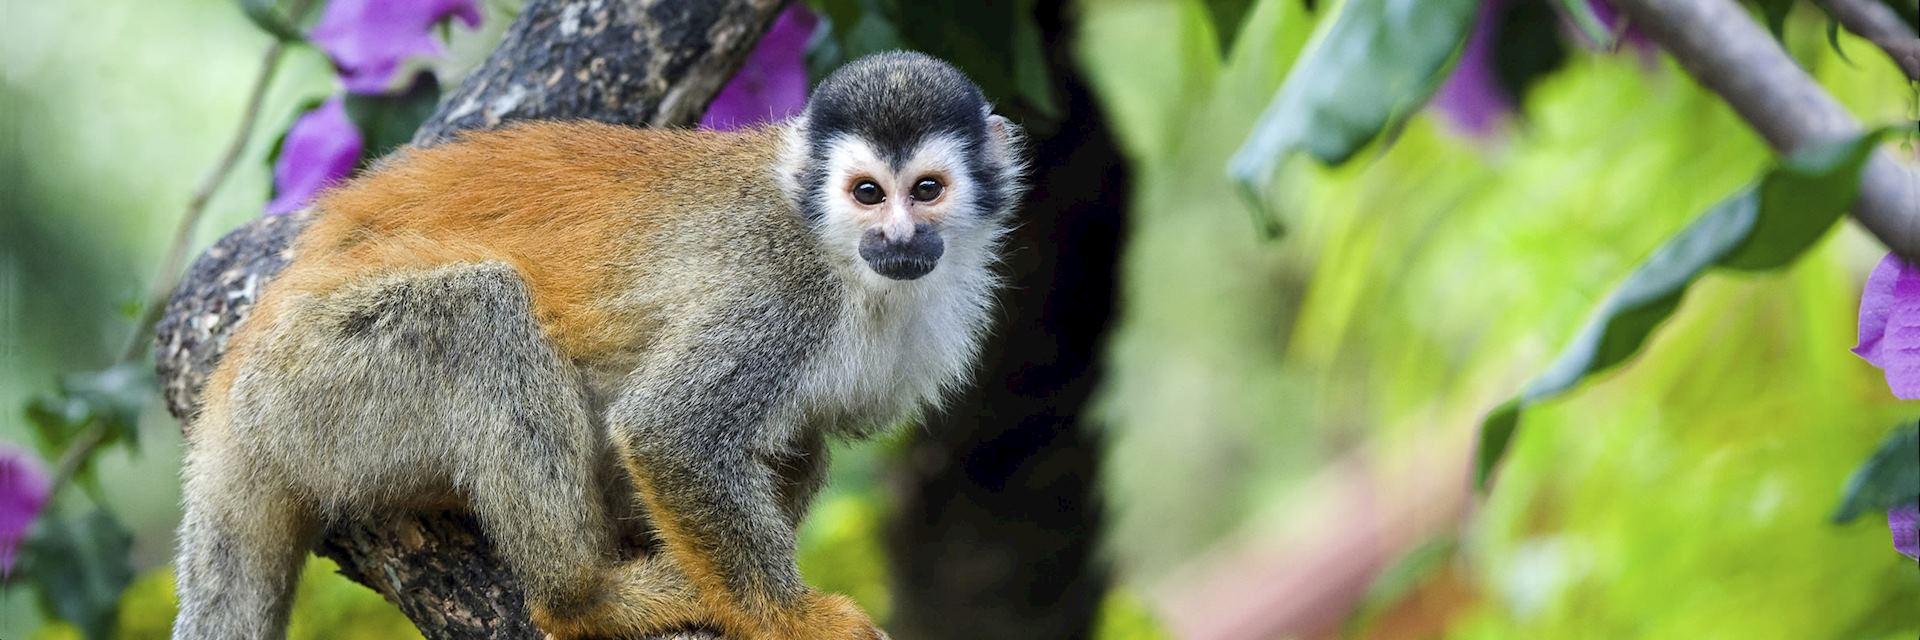 Squirrel monkey, Costa Rica